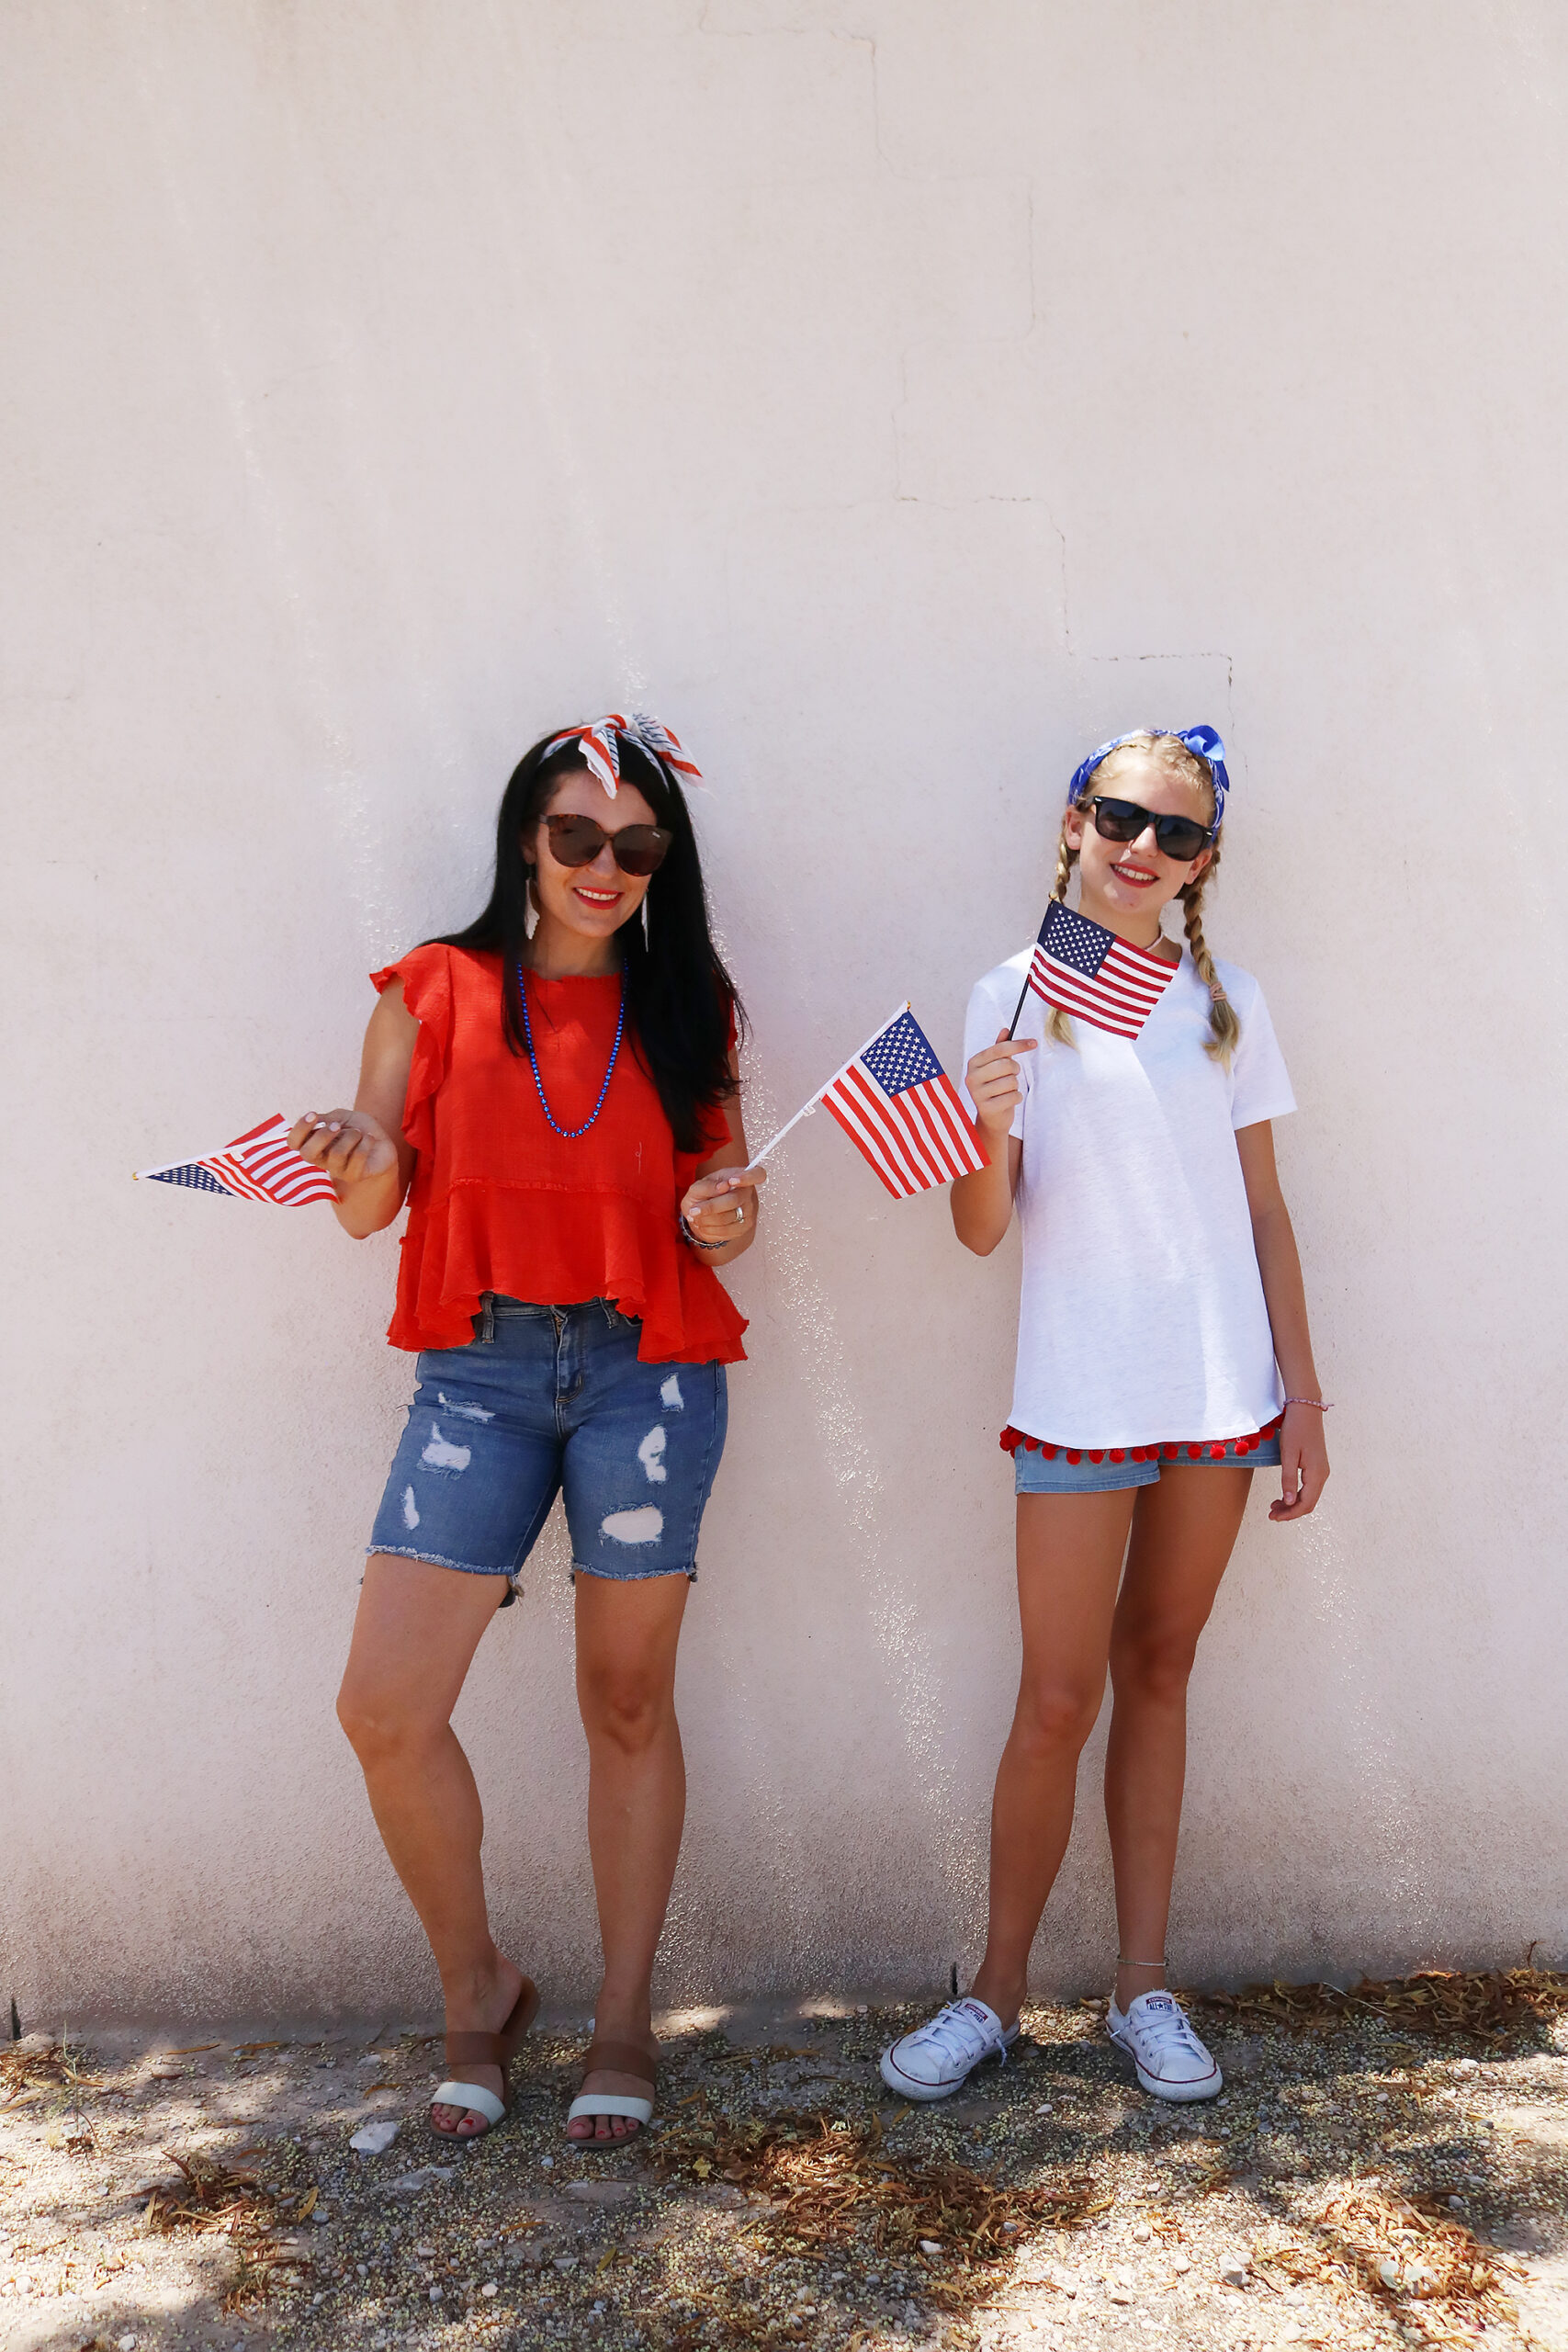 4th of July Outfit , fourth of July, red white and blue outfit, red dress, summer dress, patriotic dress, American flag, Bermuda shorts with red shirt || Darling Darleen Top Lifestyle CT Blogger  #4thofjuly #fourthofjuly